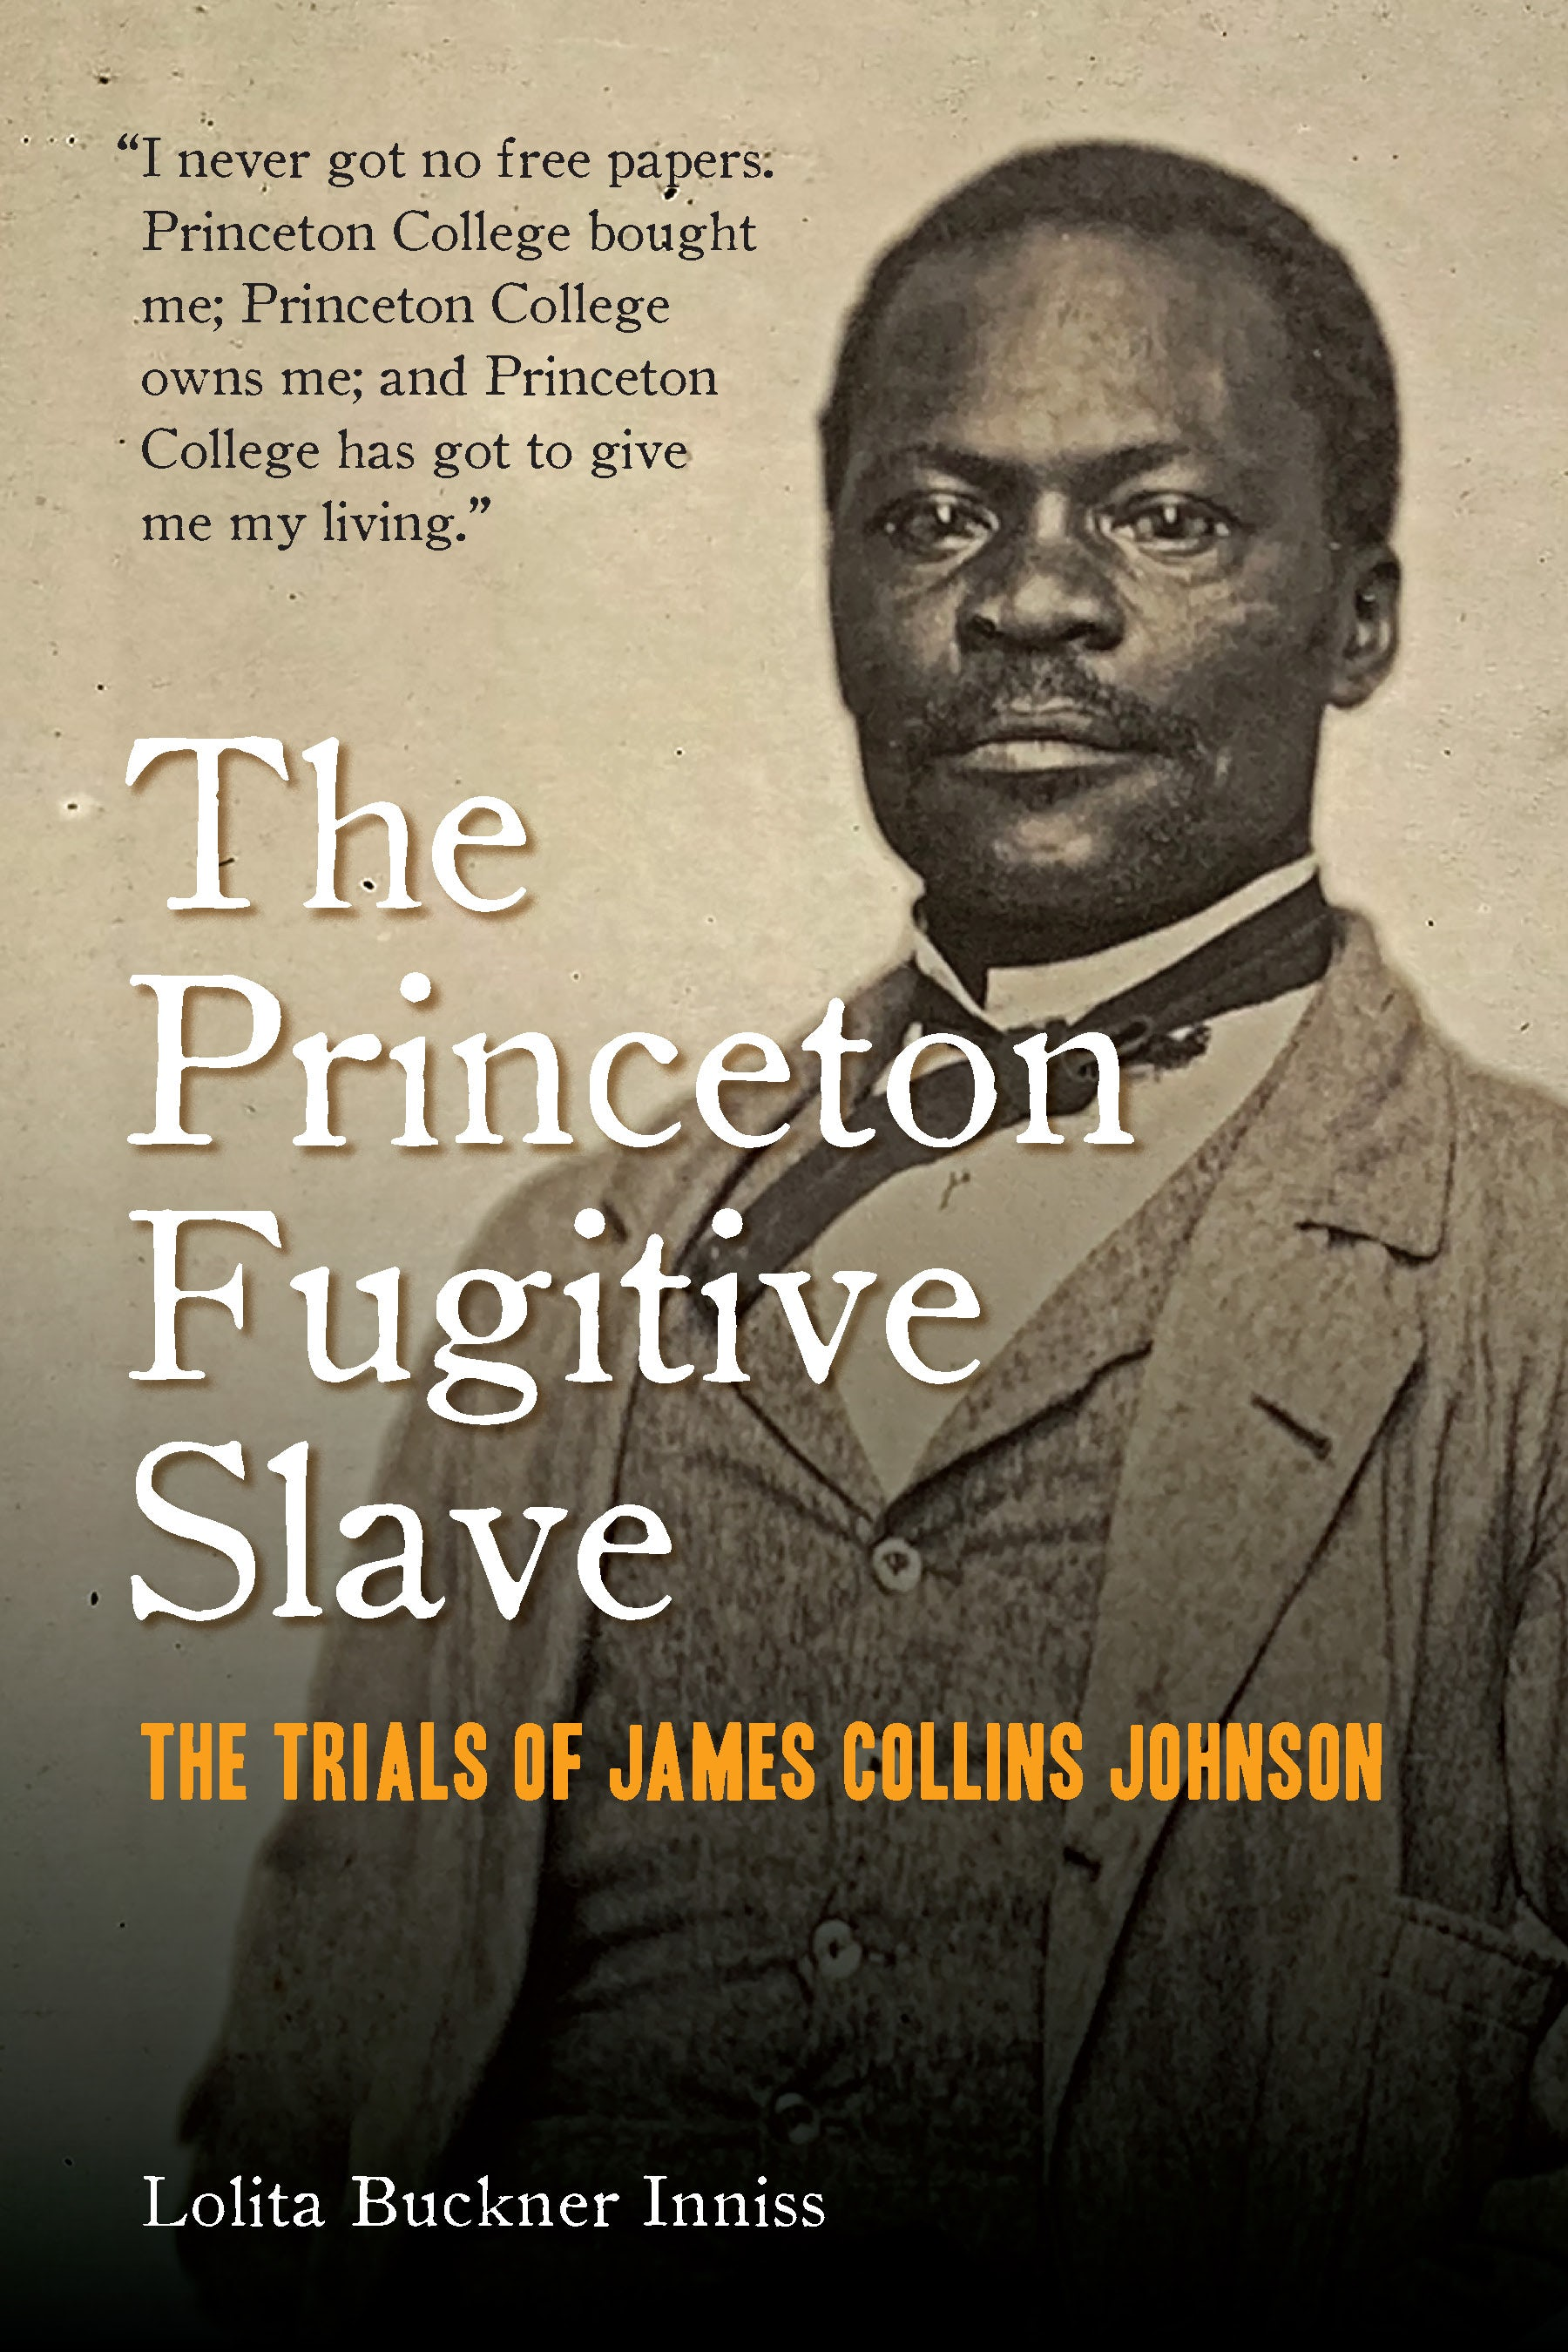 The Princeton Fugitive Slave